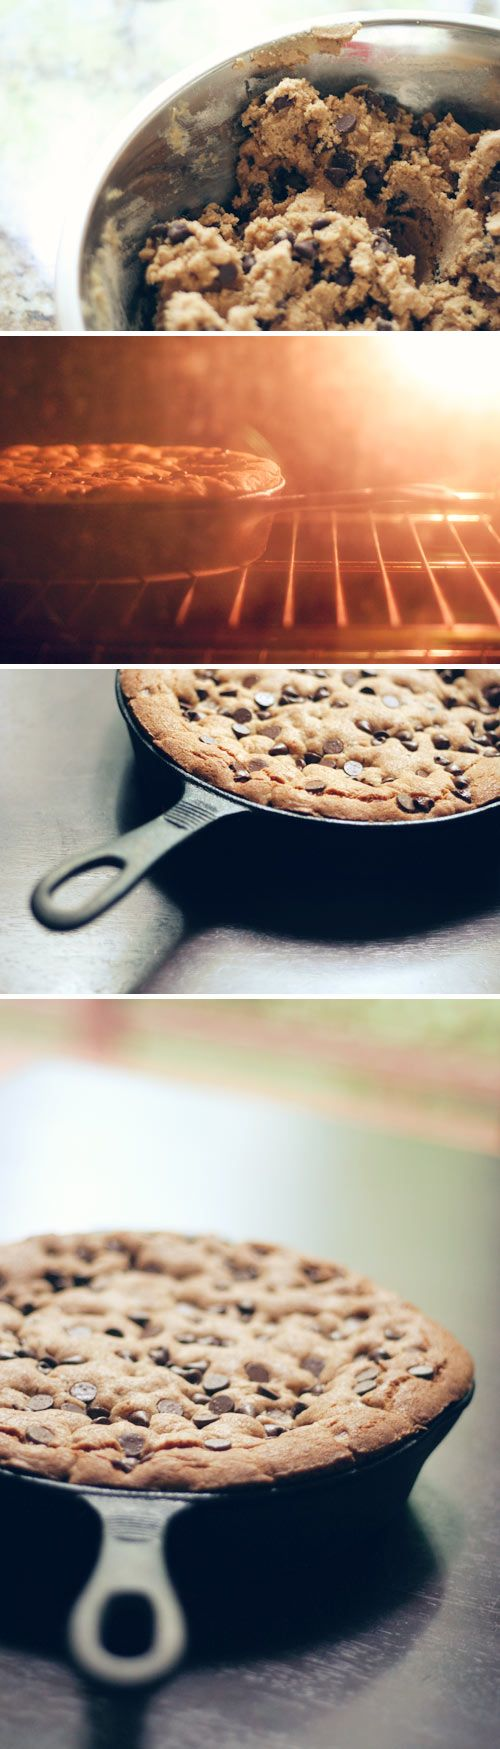 Oh yeah.......  choc chip cookie in a skillet